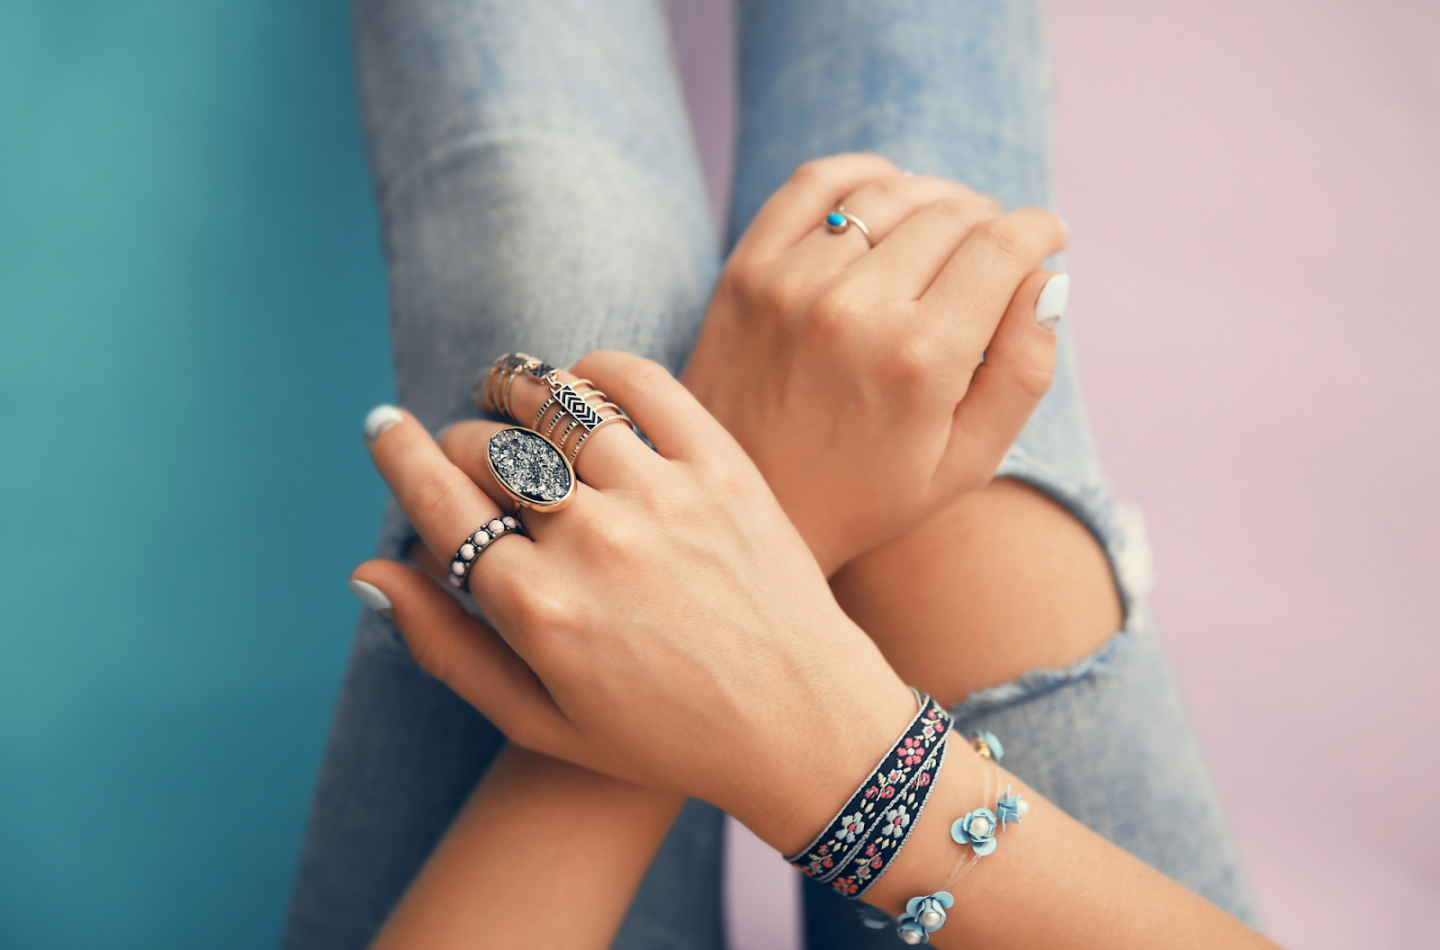 The Top Jewelry Trends of 2021